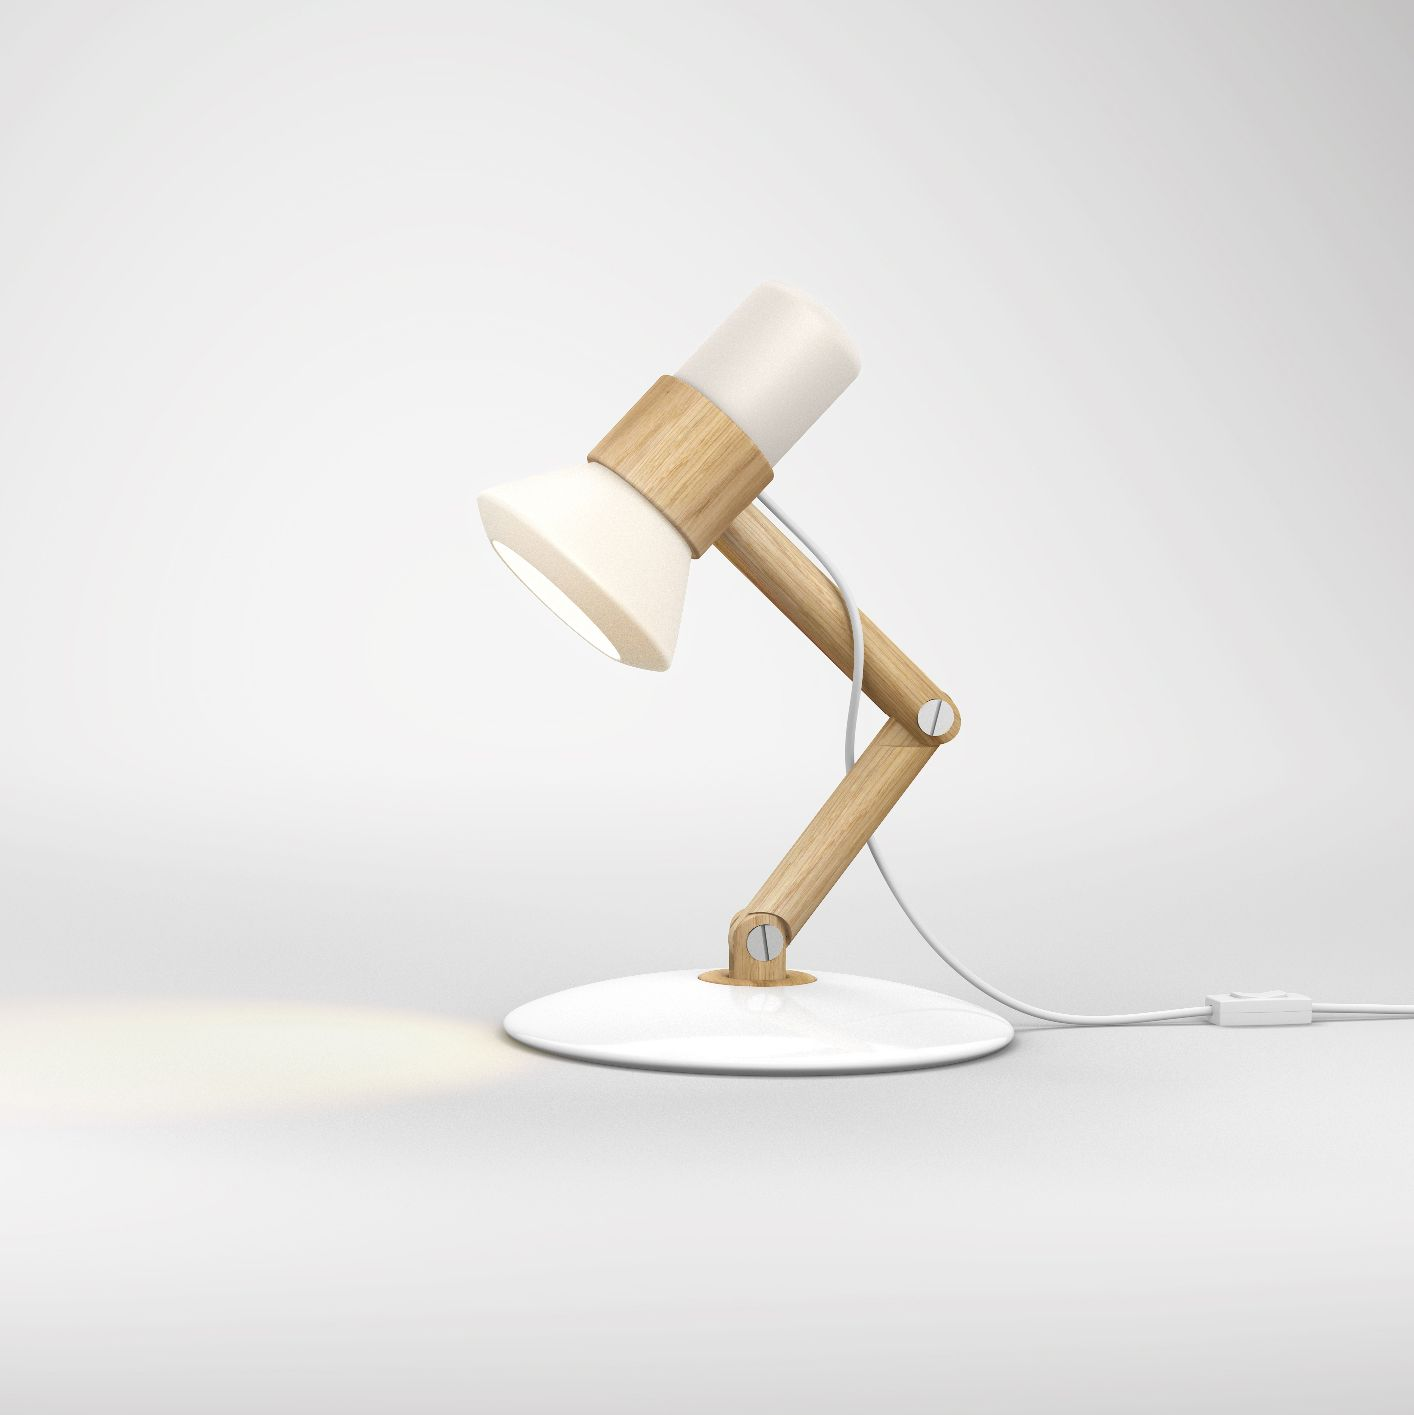 Flash-Lamp [school work] Design of a table lamp | inspired by hand holding a flashlight | porcelain + wood